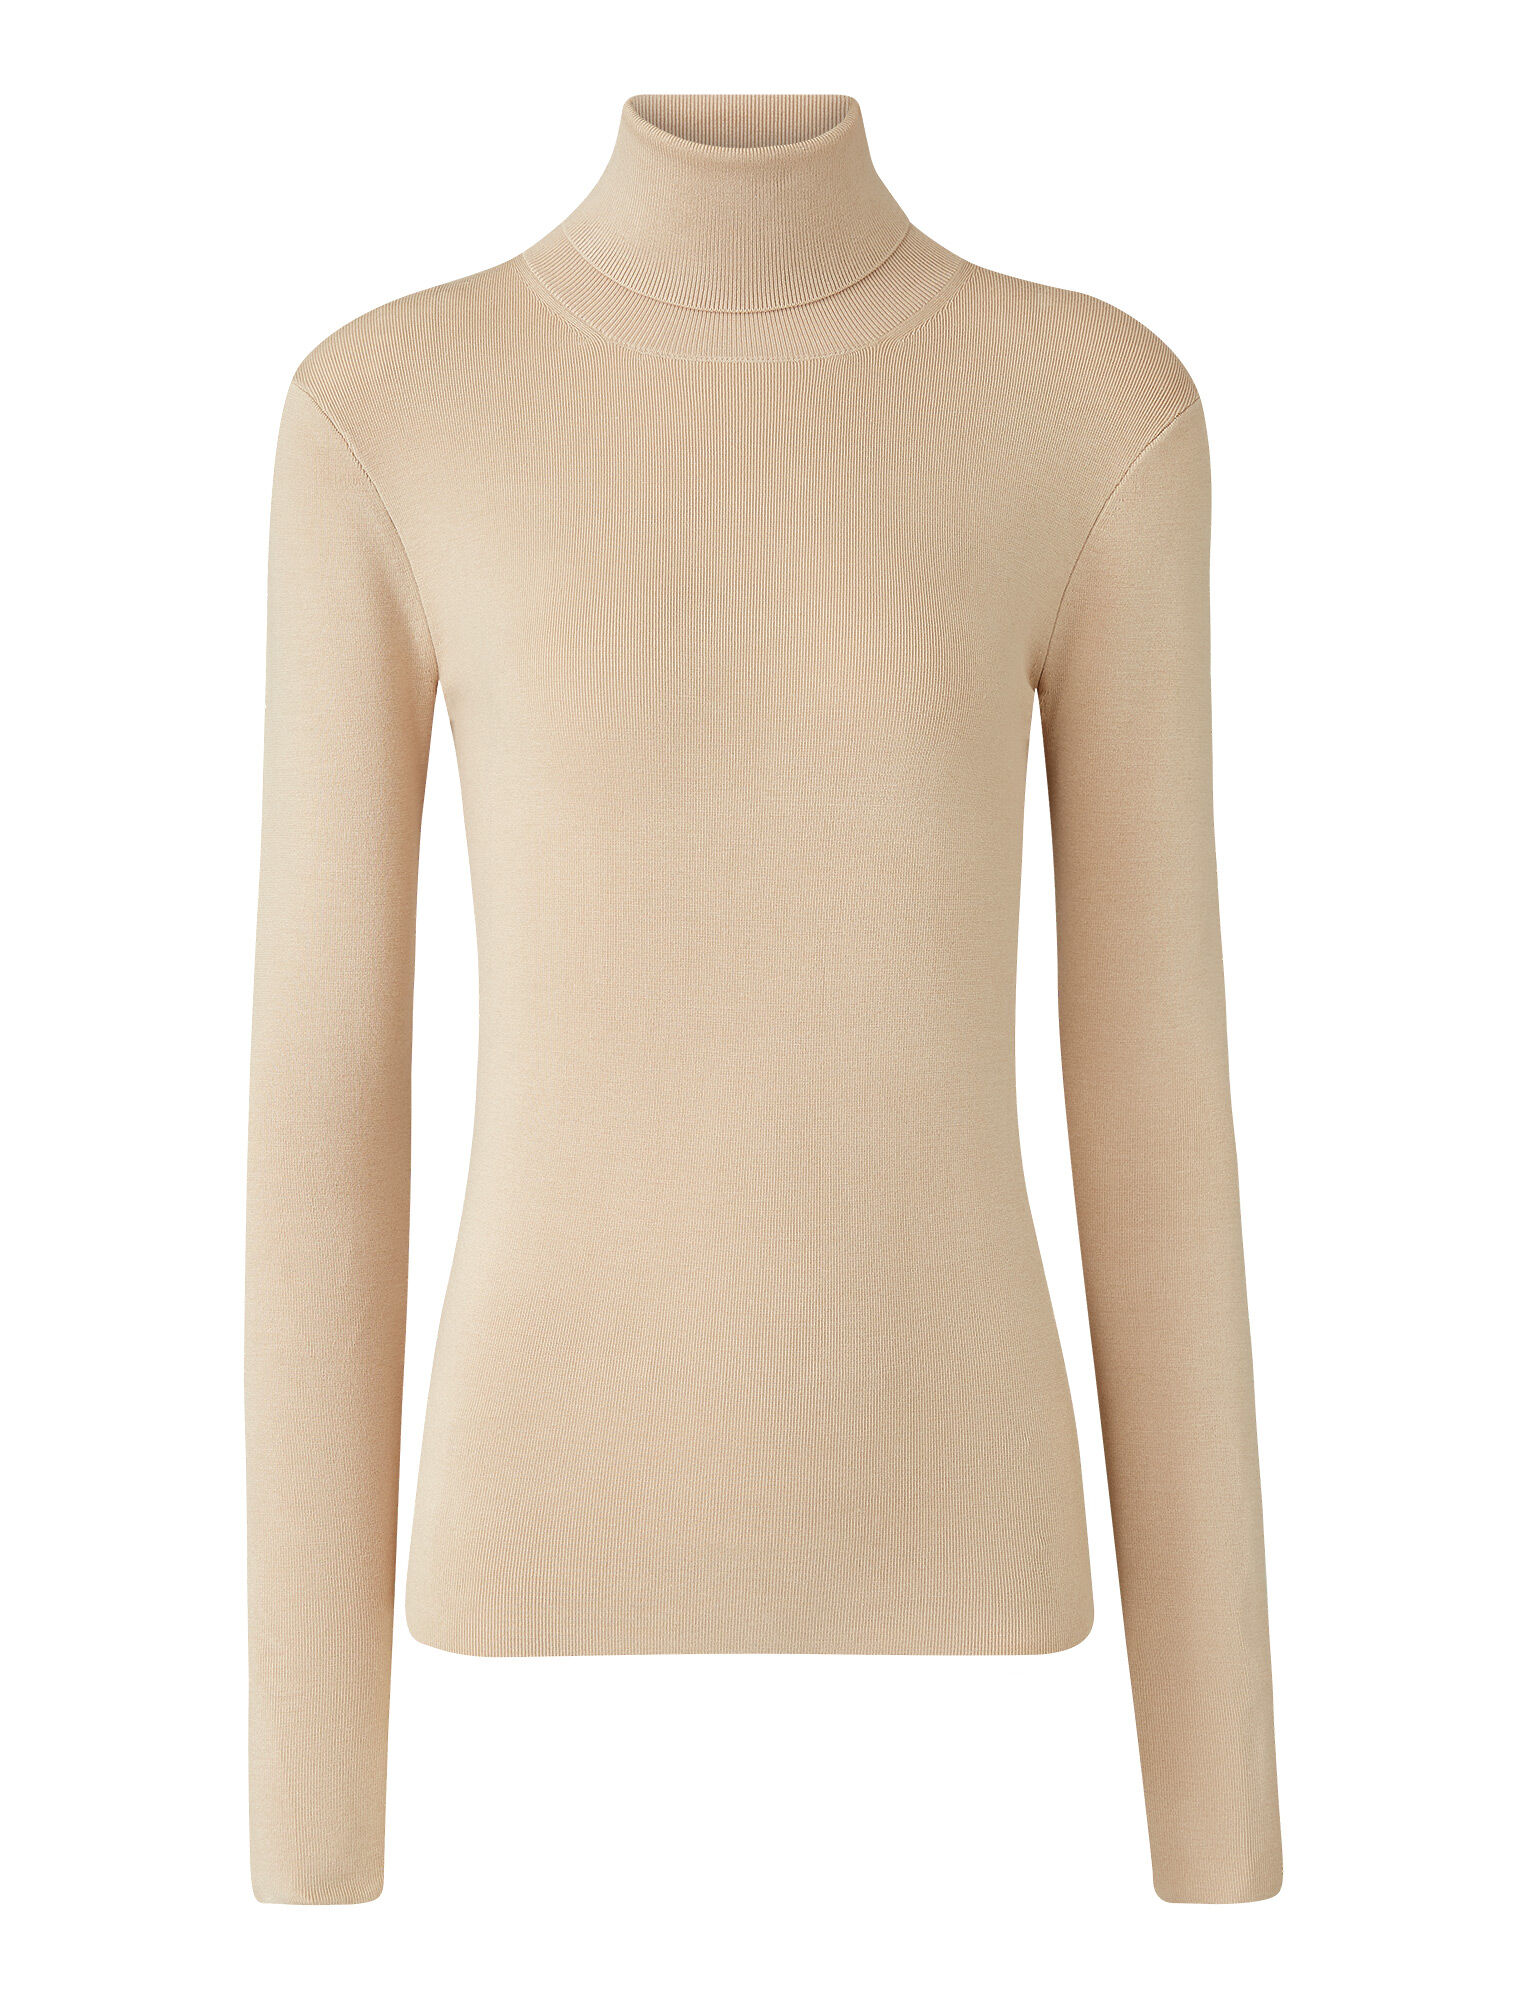 Joseph, Roll Neck Silk Stretch Knit, in LATTE